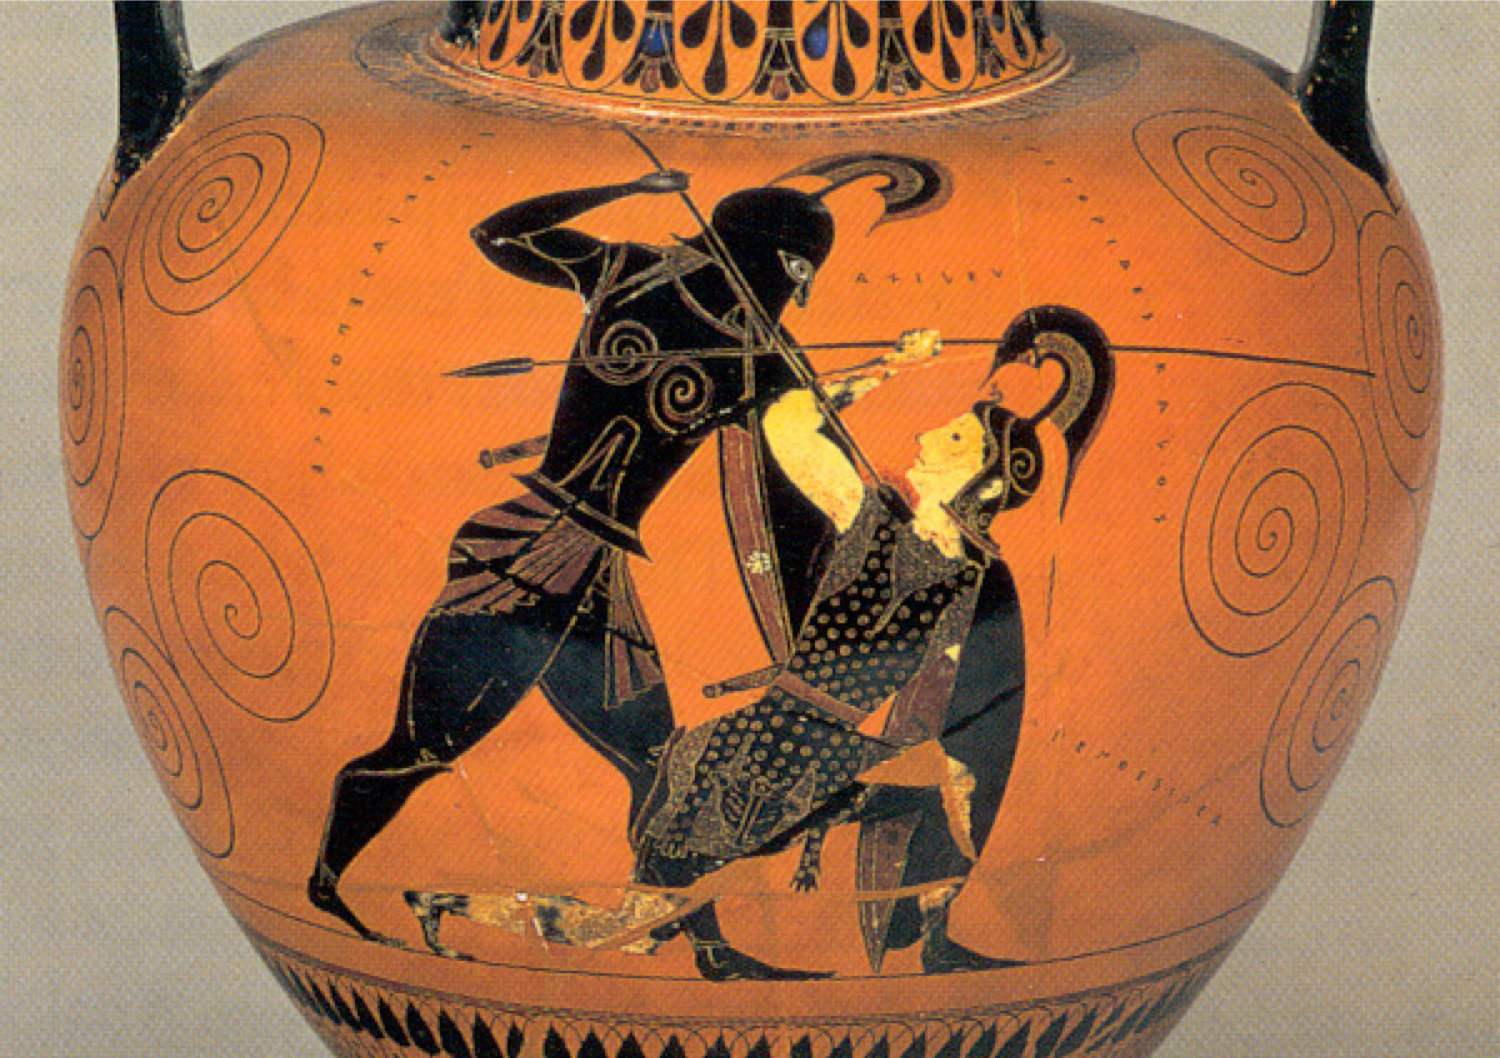 Figure 3: Achilles' spear pierces Penthesilea's chest as the Amazon pleads for her life on an ancient Greek amphora from the sixth-century BCE. Credit: Wikimedia.